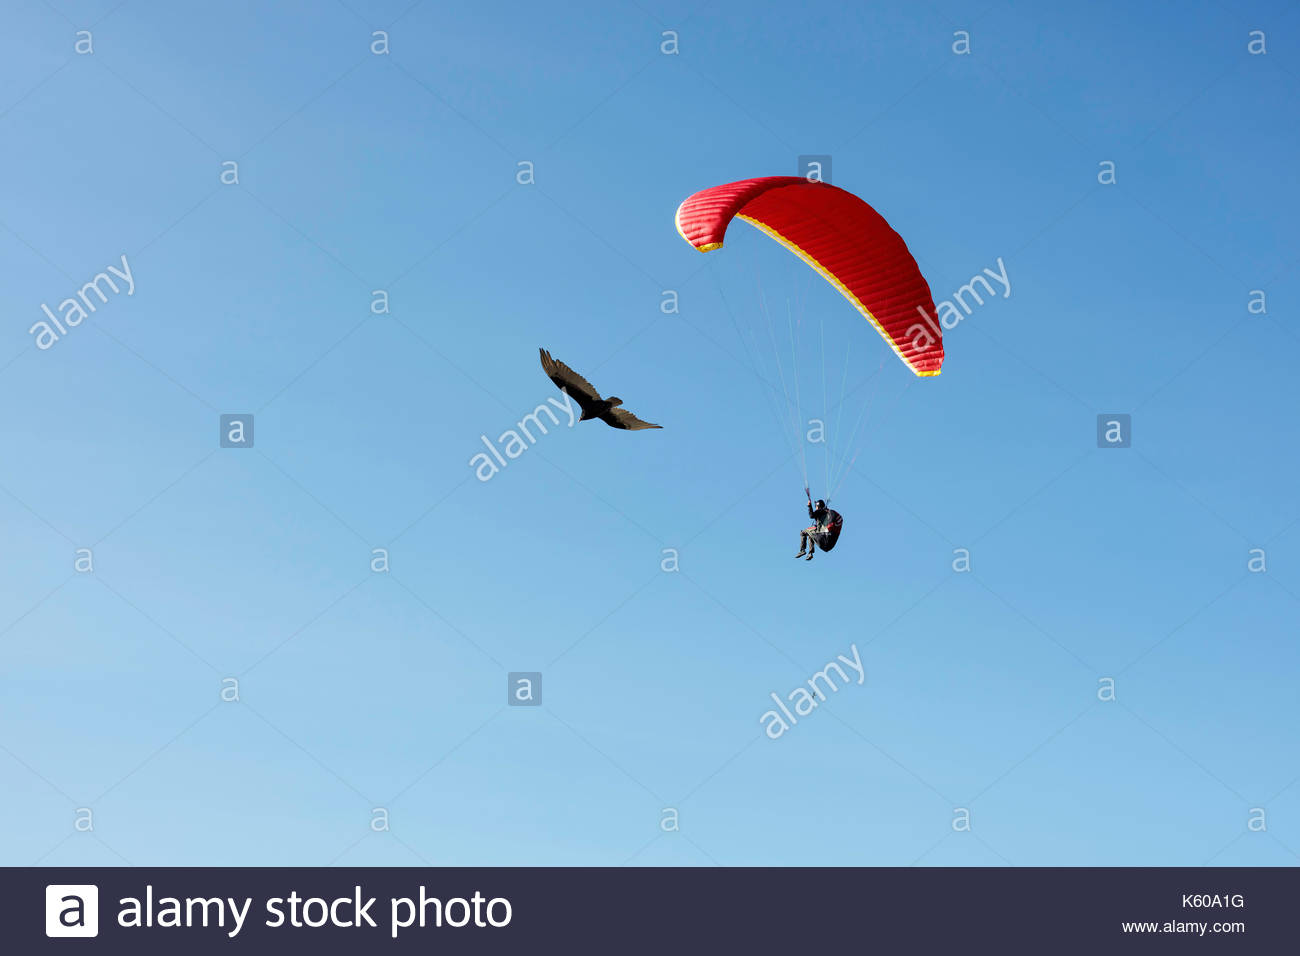 Turkey Vulture paragliding paraglider kiting flying soaring airfoil thermal wind Scarborough Bluffs Toronto Ontario Canada - Stock Image